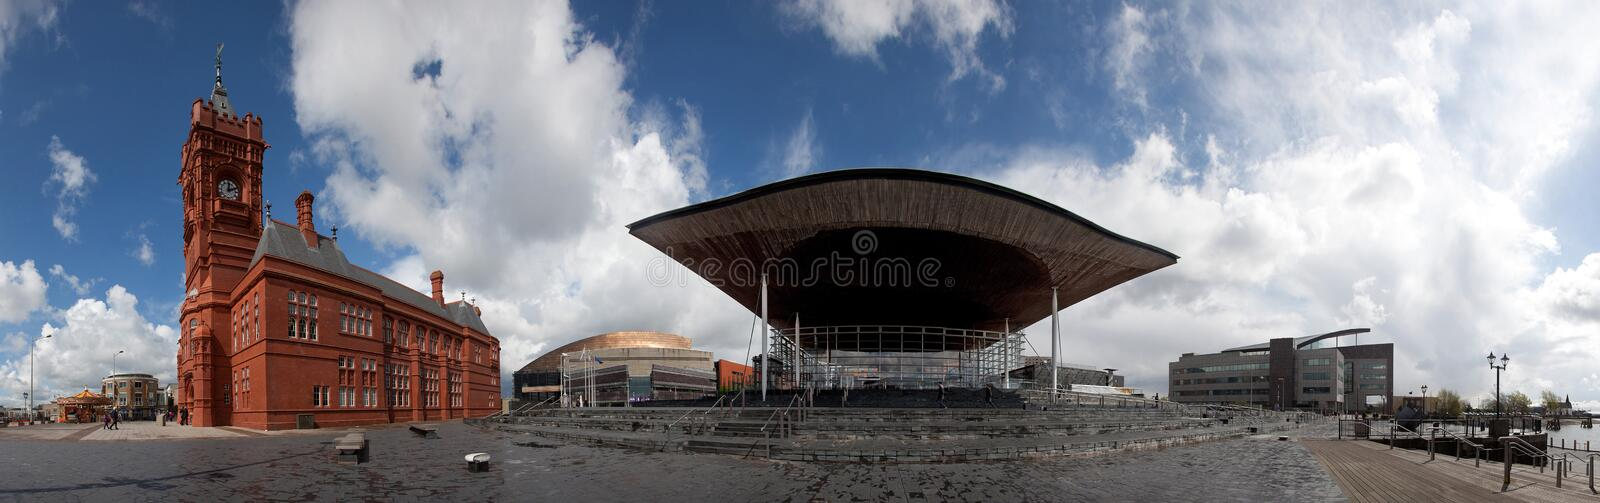 Download Cardiff Bay stock image. Image of copper, roald, storm - 24554293